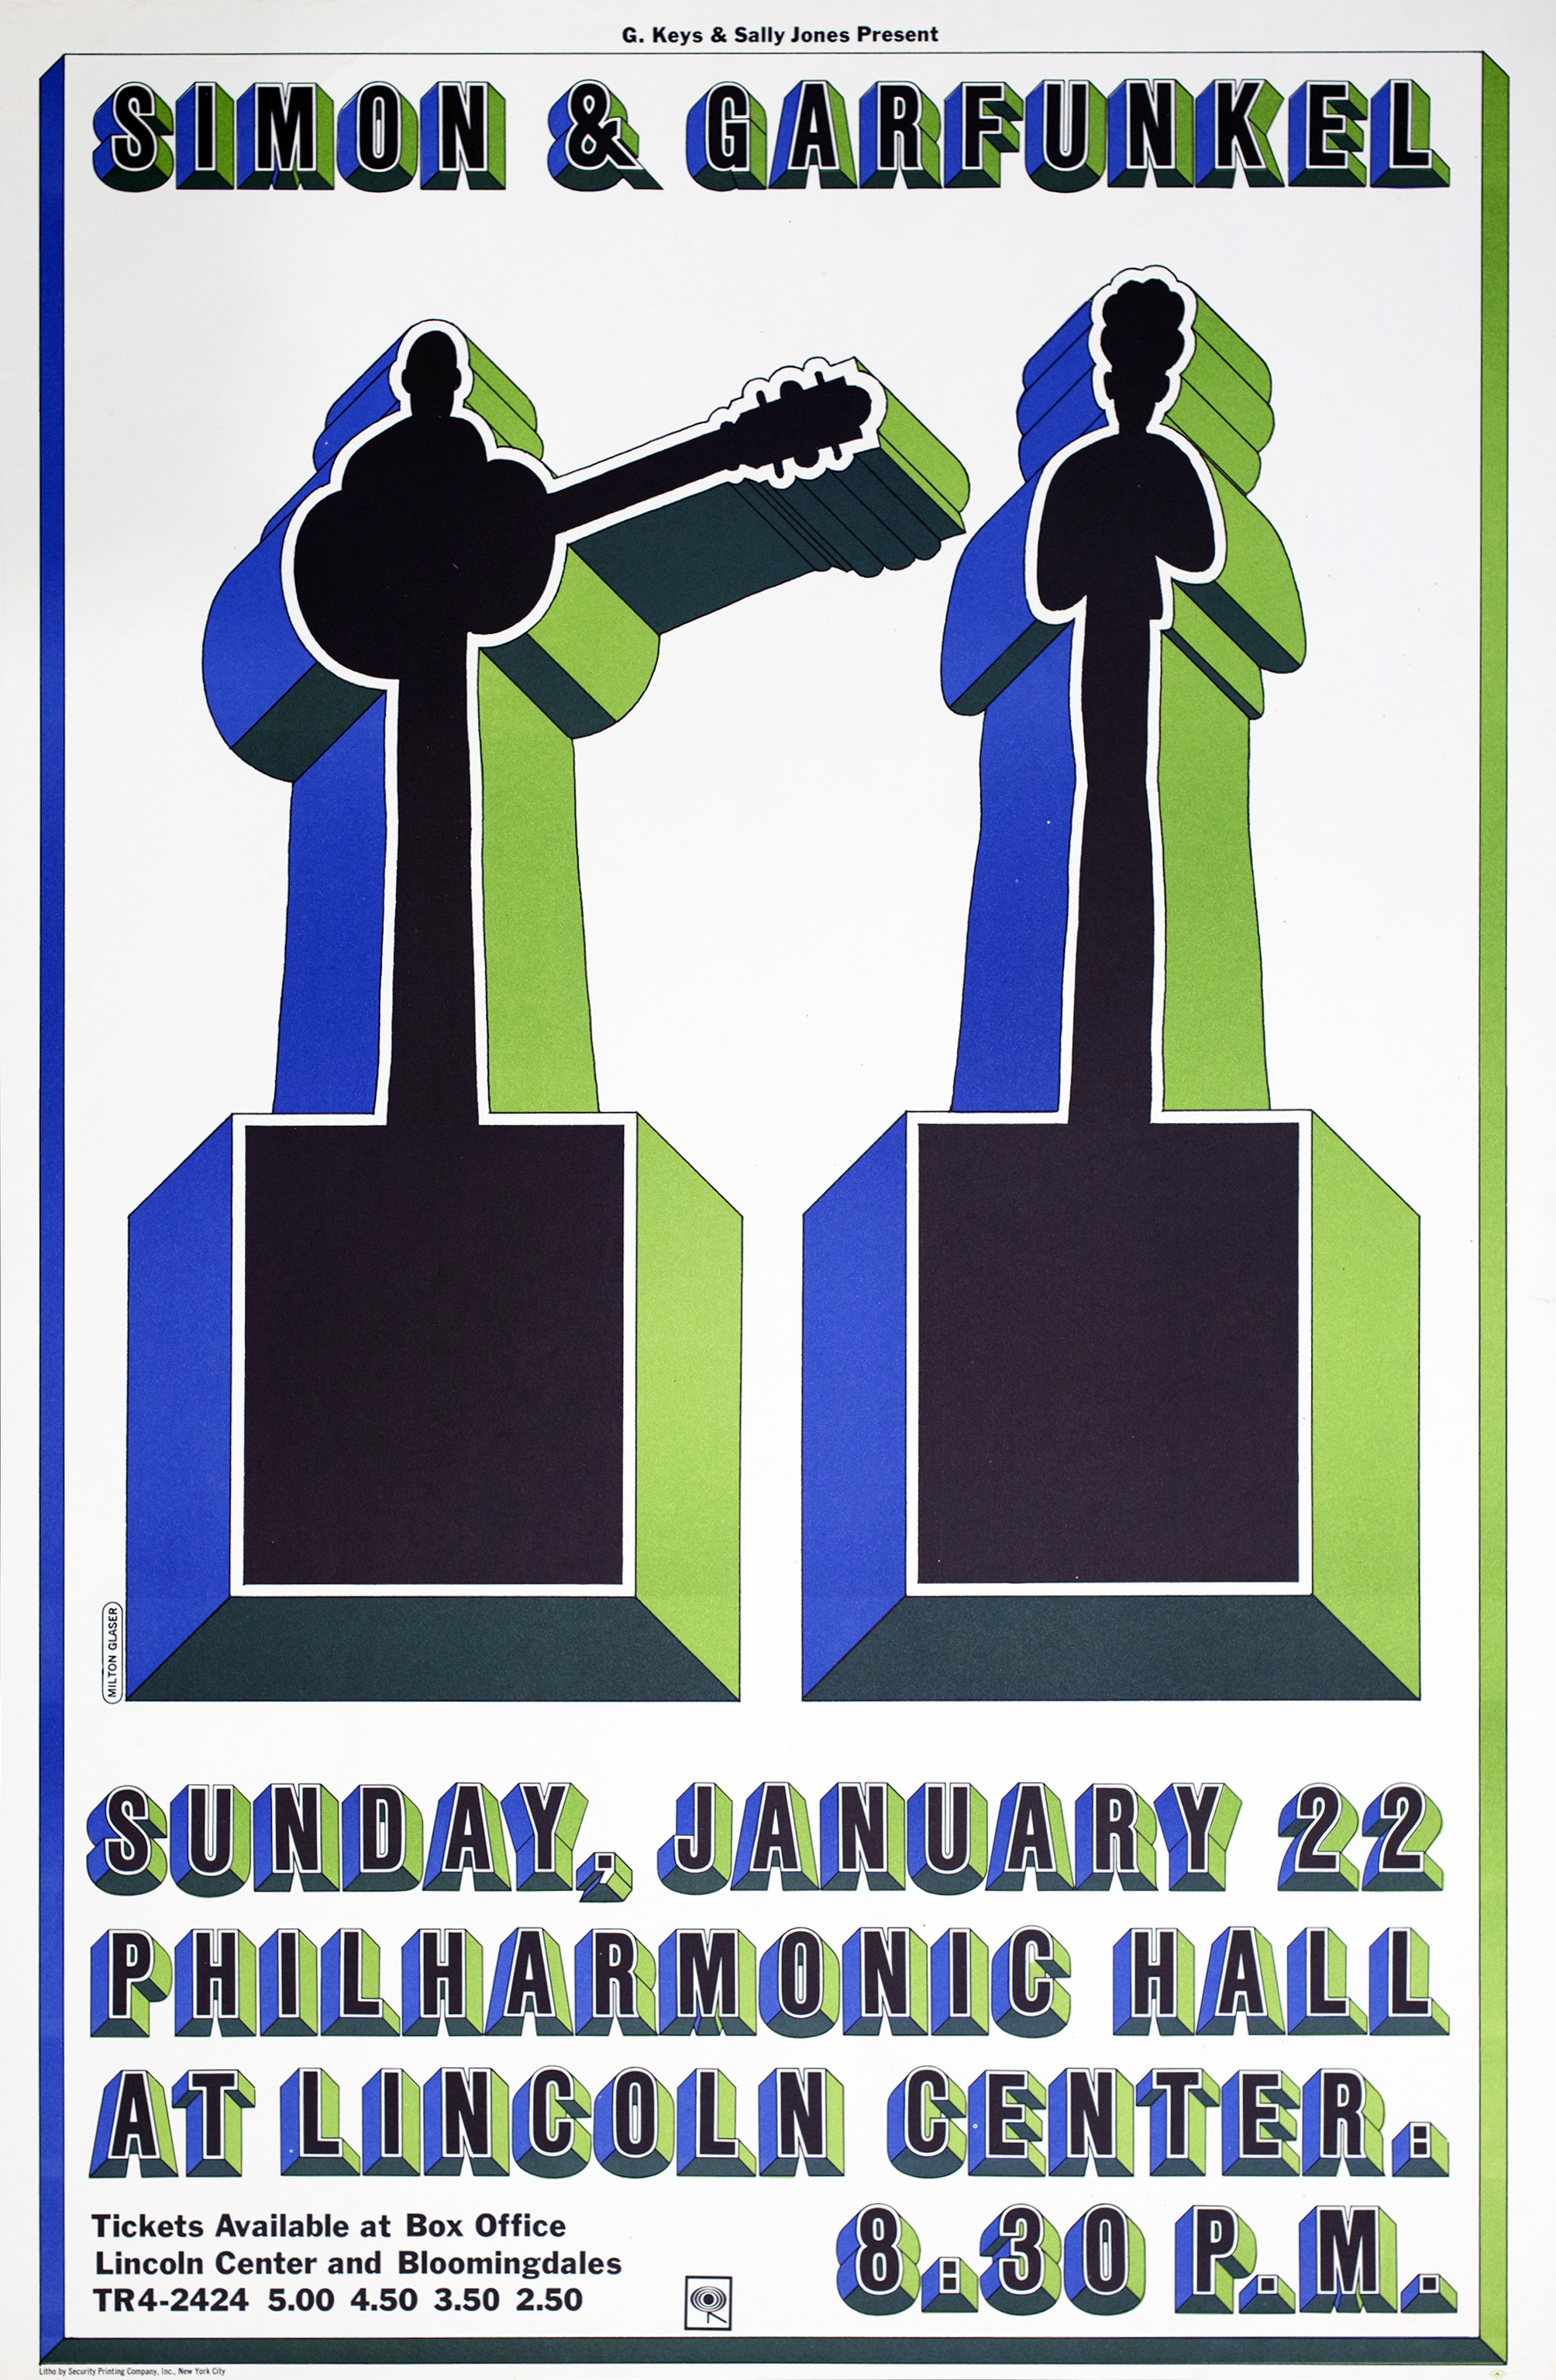 Two three-dimensional silhouettes in black with green and blue sides, one holding a guitar.